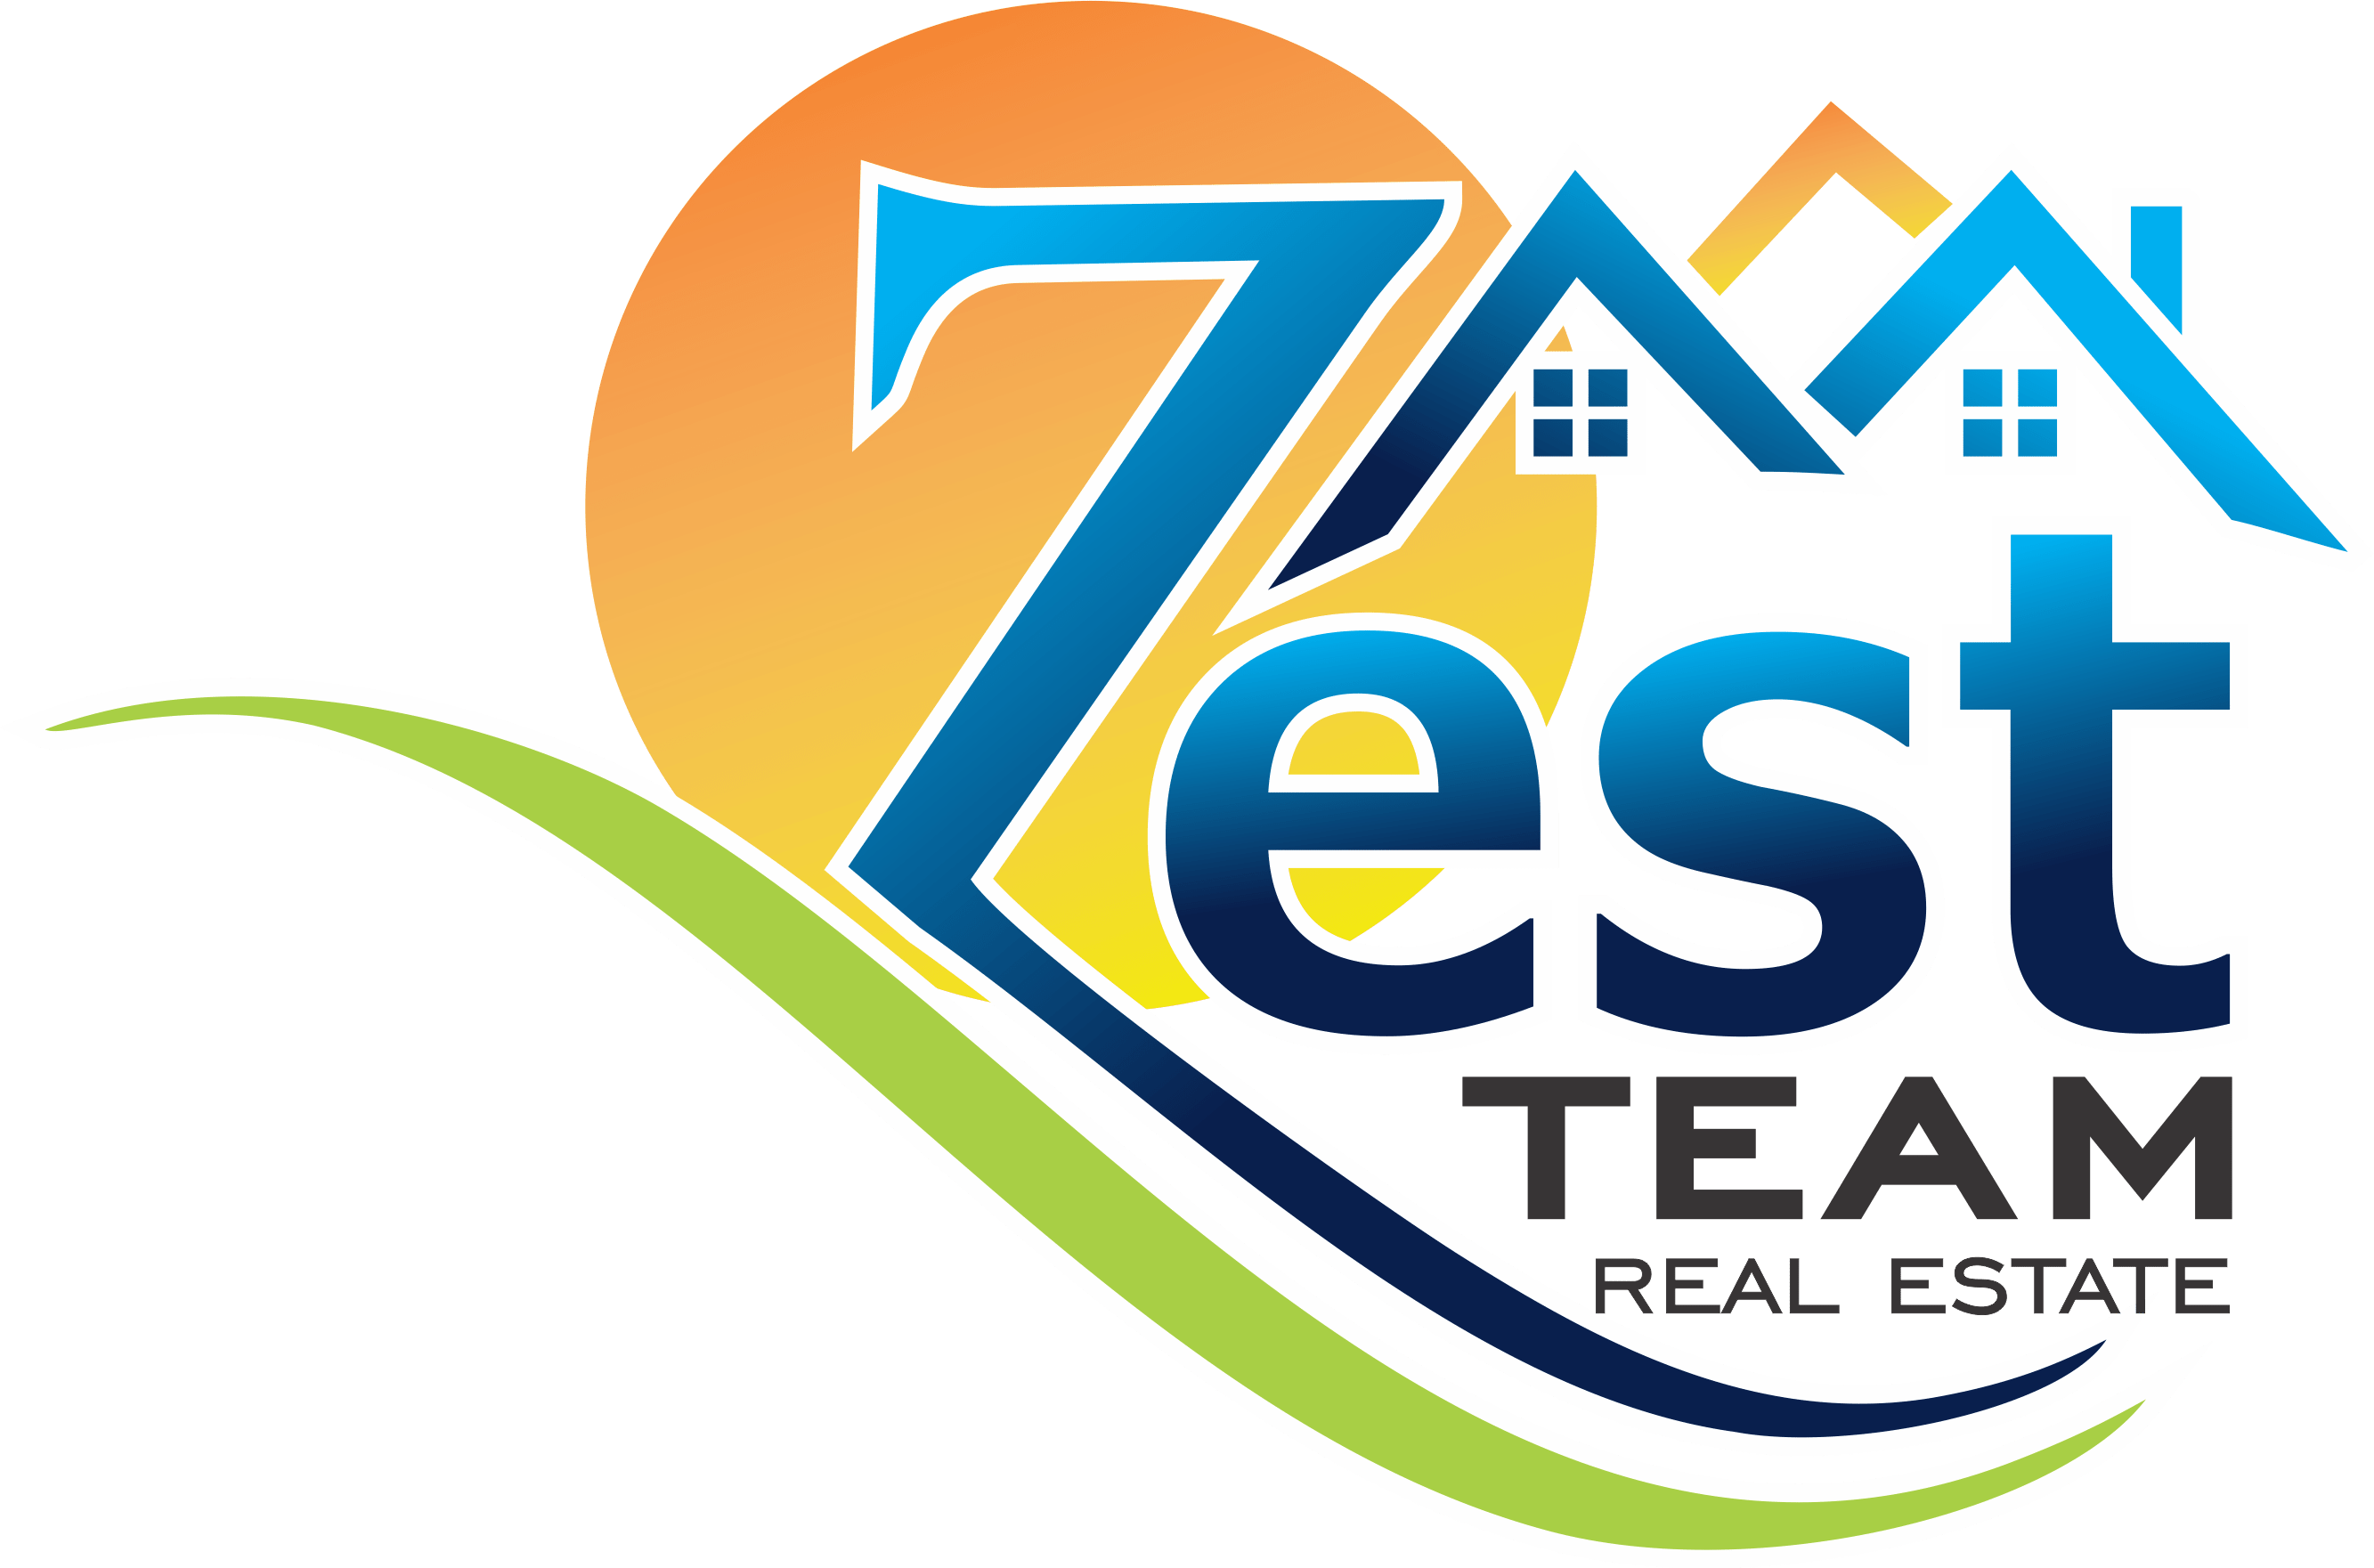 Zest Team At Future Home Realty